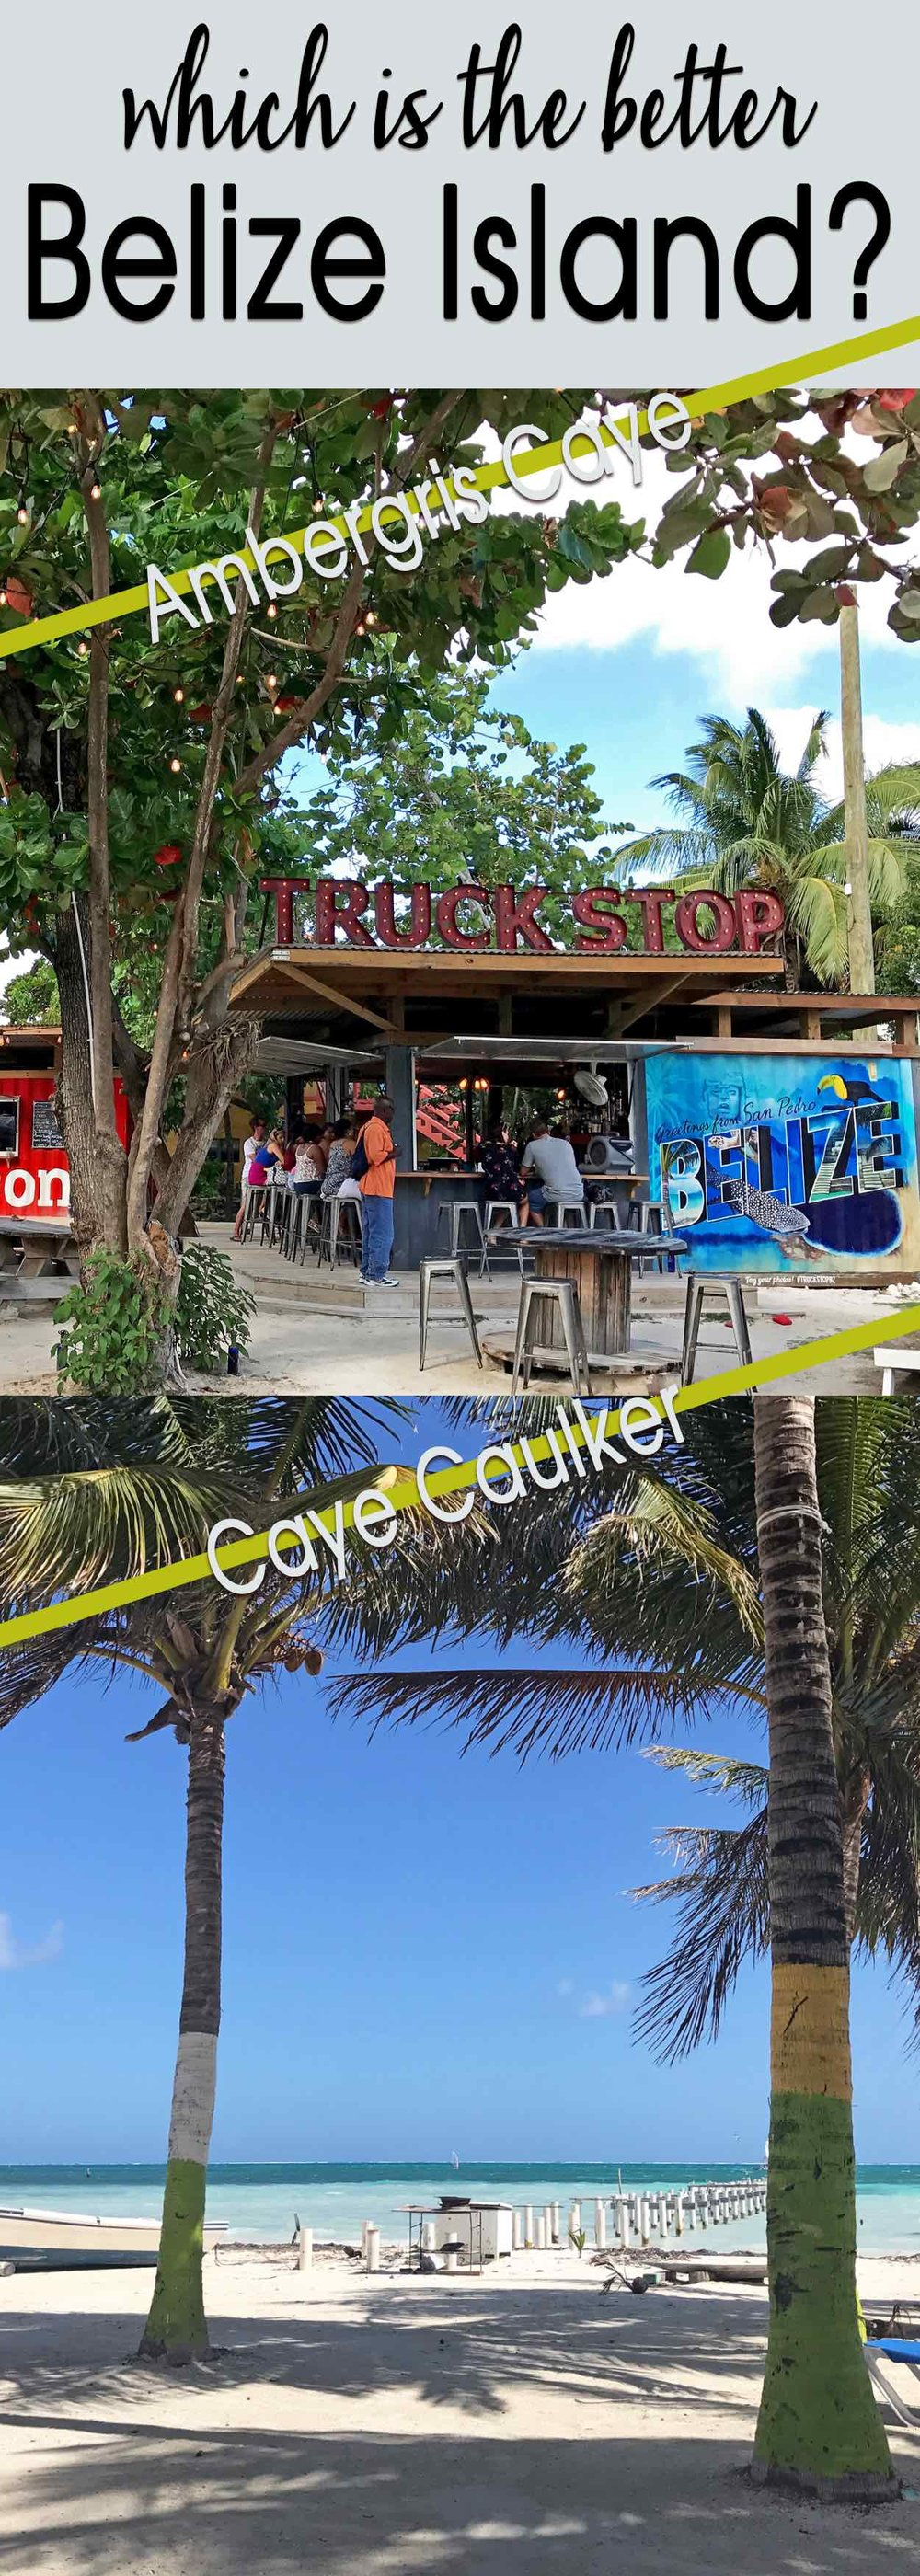 Ambergris Caye or Caulker Caulker | Which Belize island is better?